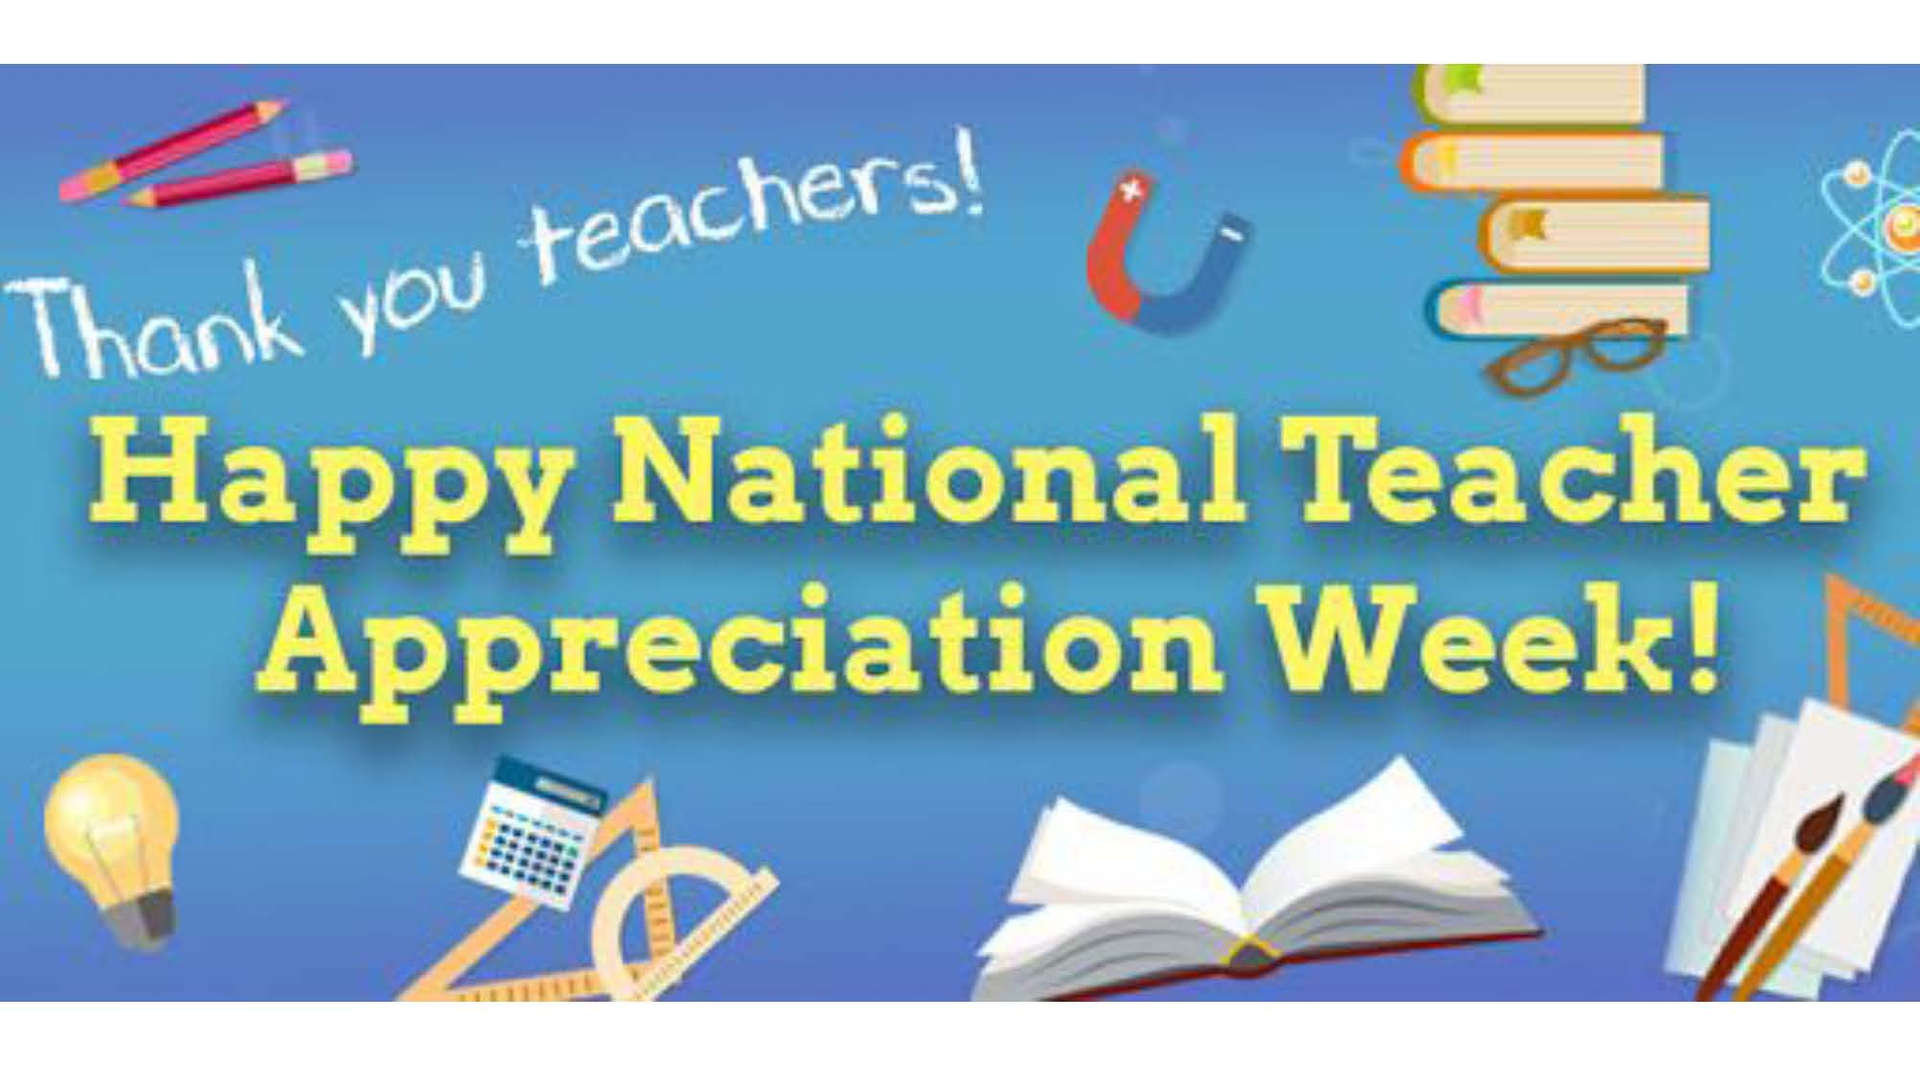 Happy National Teacher Appreciation Week!